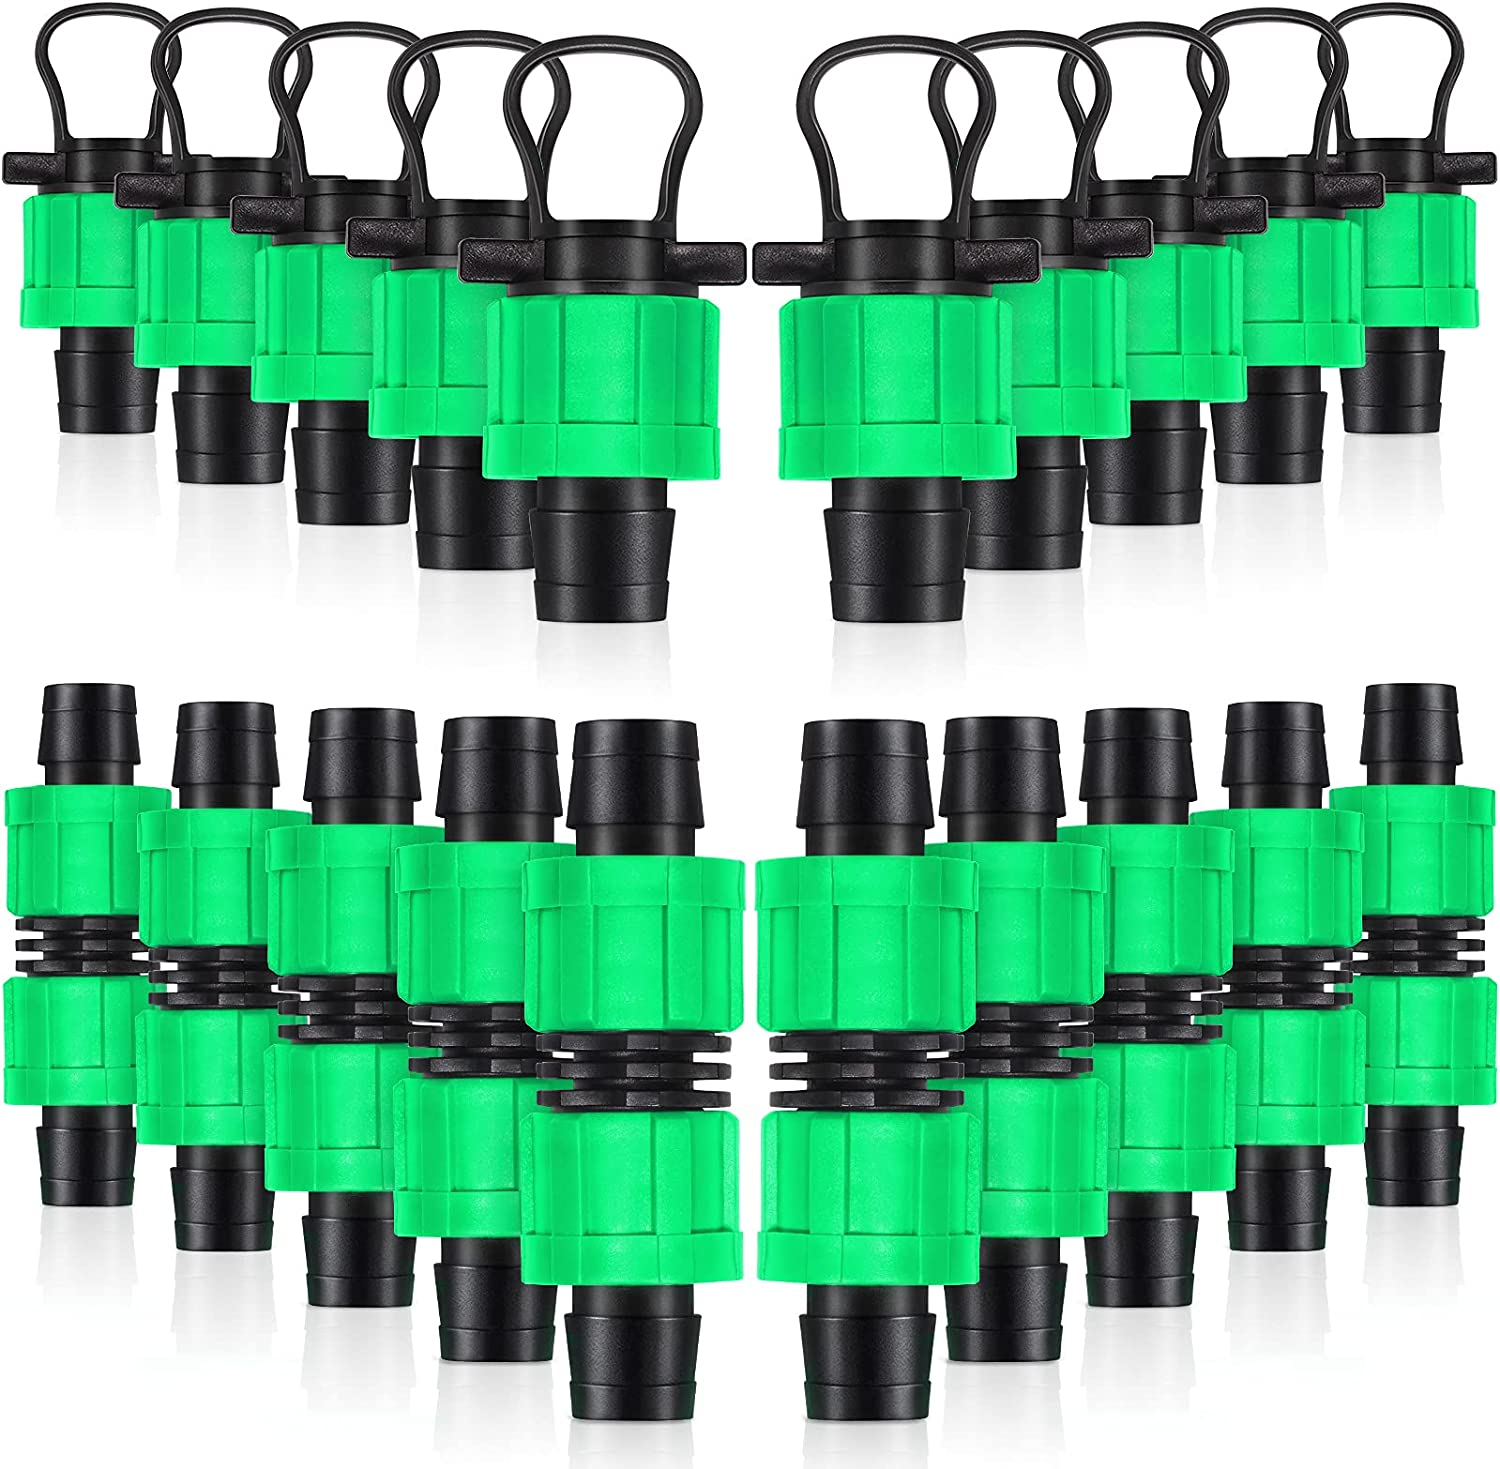 20 Pcs Drip Irrigation Coupling, Tubing End Cap Plug 1/2 Inch drip Irrigation Parts Universal Connector Compatible with Sprinkler Systems 16-17mm Drip Tape AG Tubing Drip